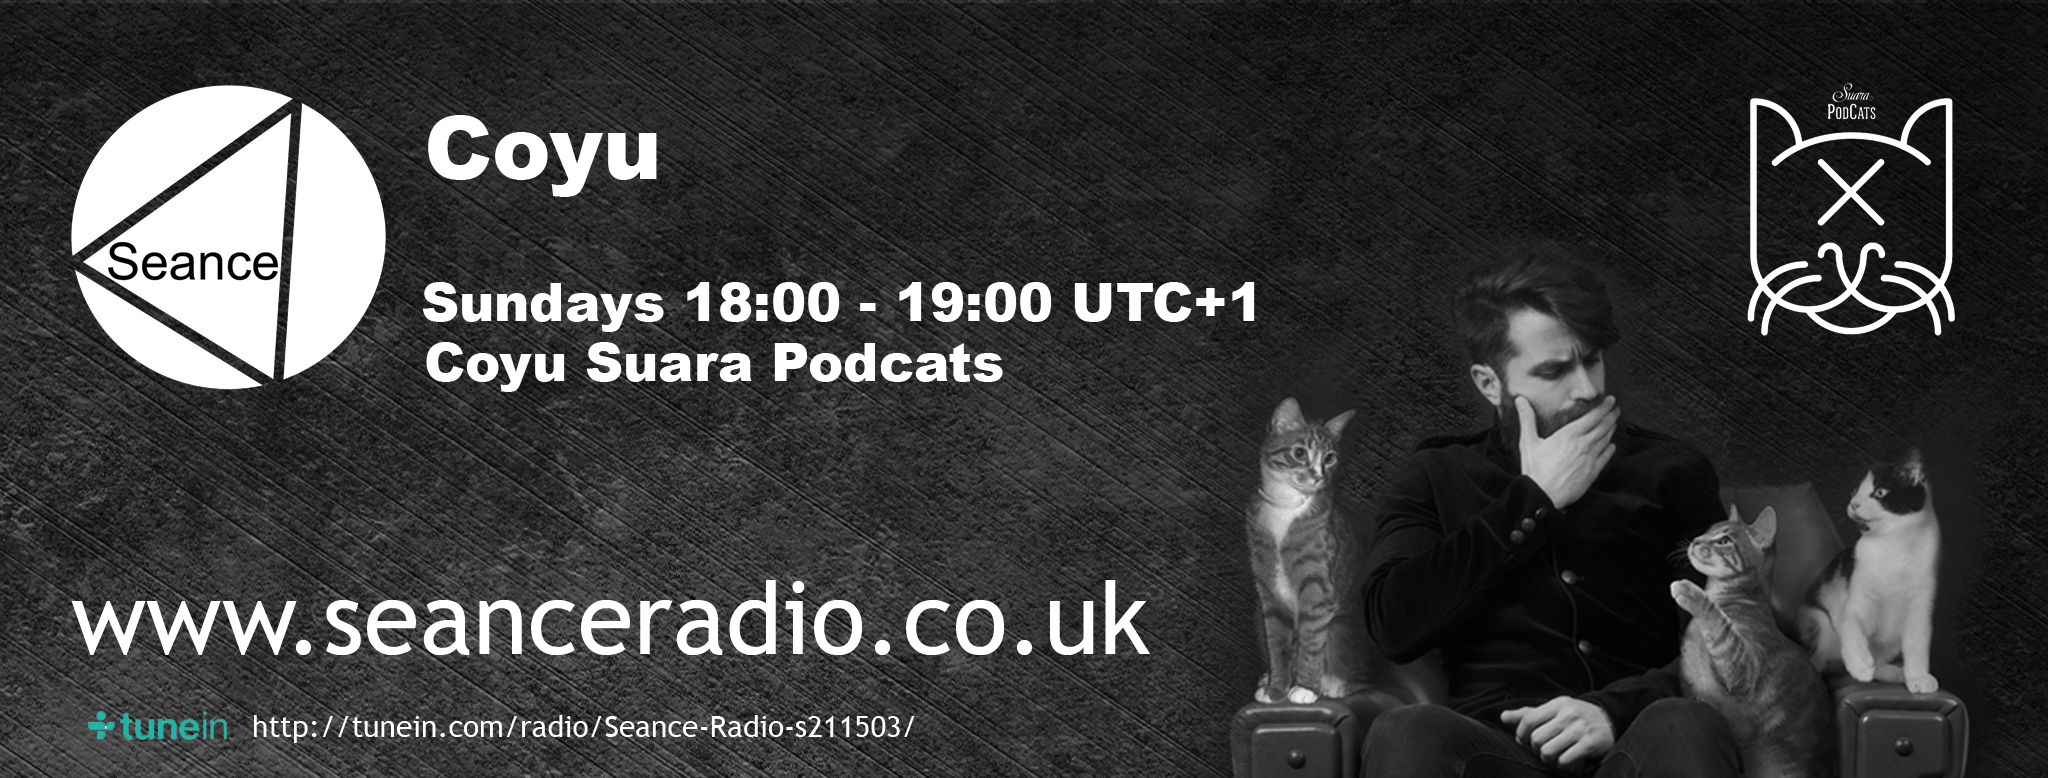 Electronica Medium Font Check Out Coyu S Suara Podcats Every Sunday On Seance Radio 18 00